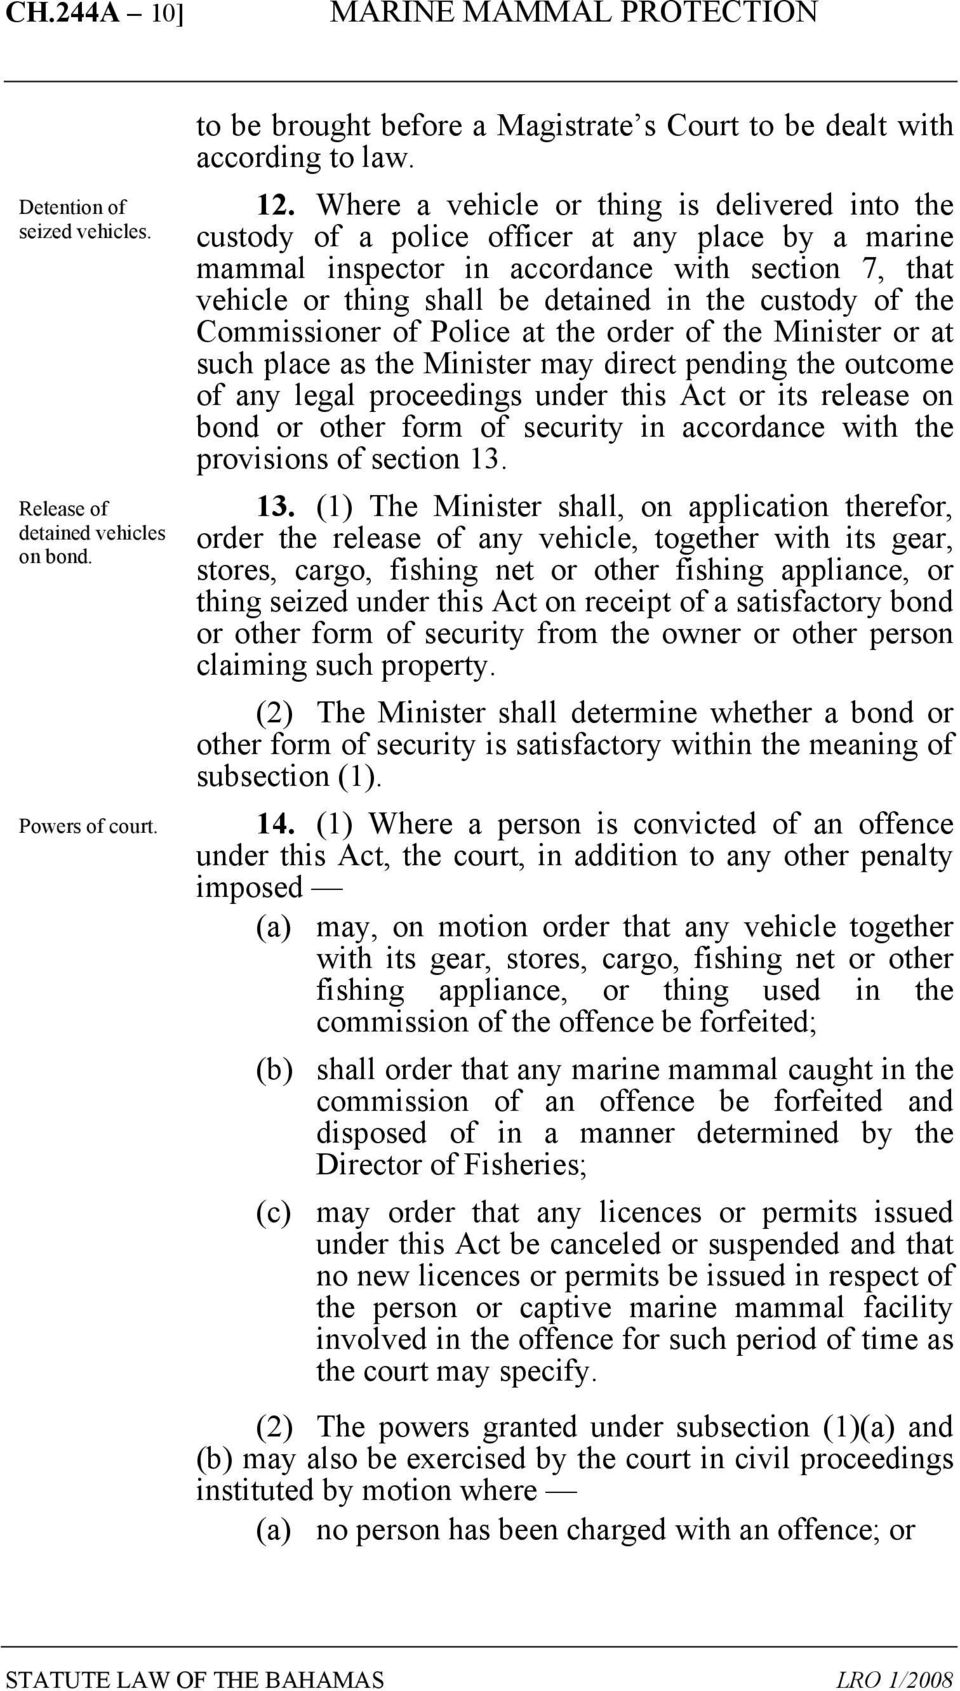 custody of the Commissioner of Police at the order of the Minister or at such place as the Minister may direct pending the outcome of any legal proceedings under this Act or its release on bond or